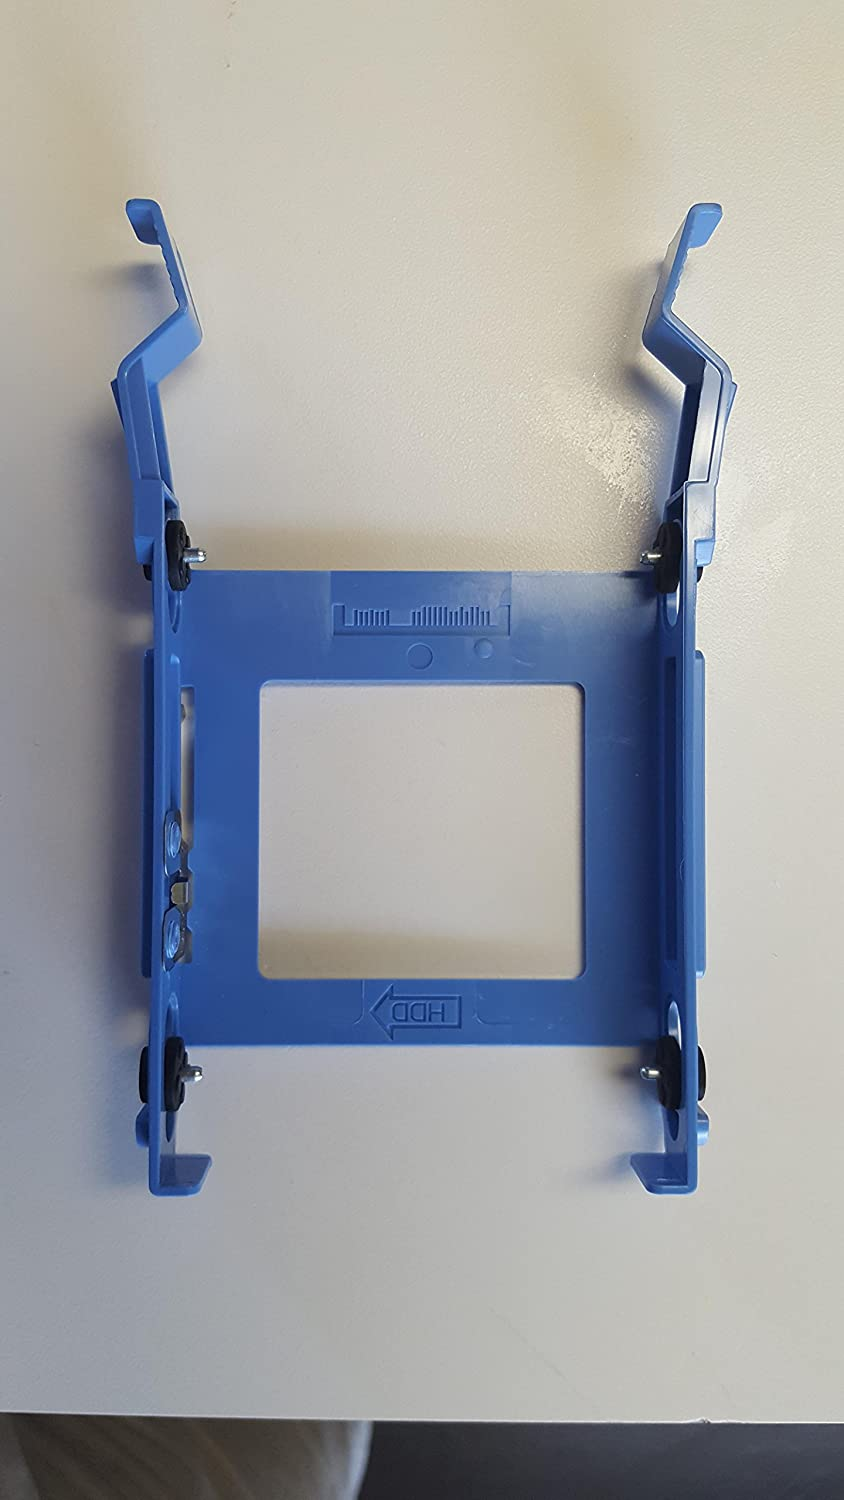 Oem For Dell Hard Drive OptiPlex 3040 5040 7040 MT Inspiron Vostro 3600  3650 Bay Caddy HDD 2 5 SSD Bracket X9FV3